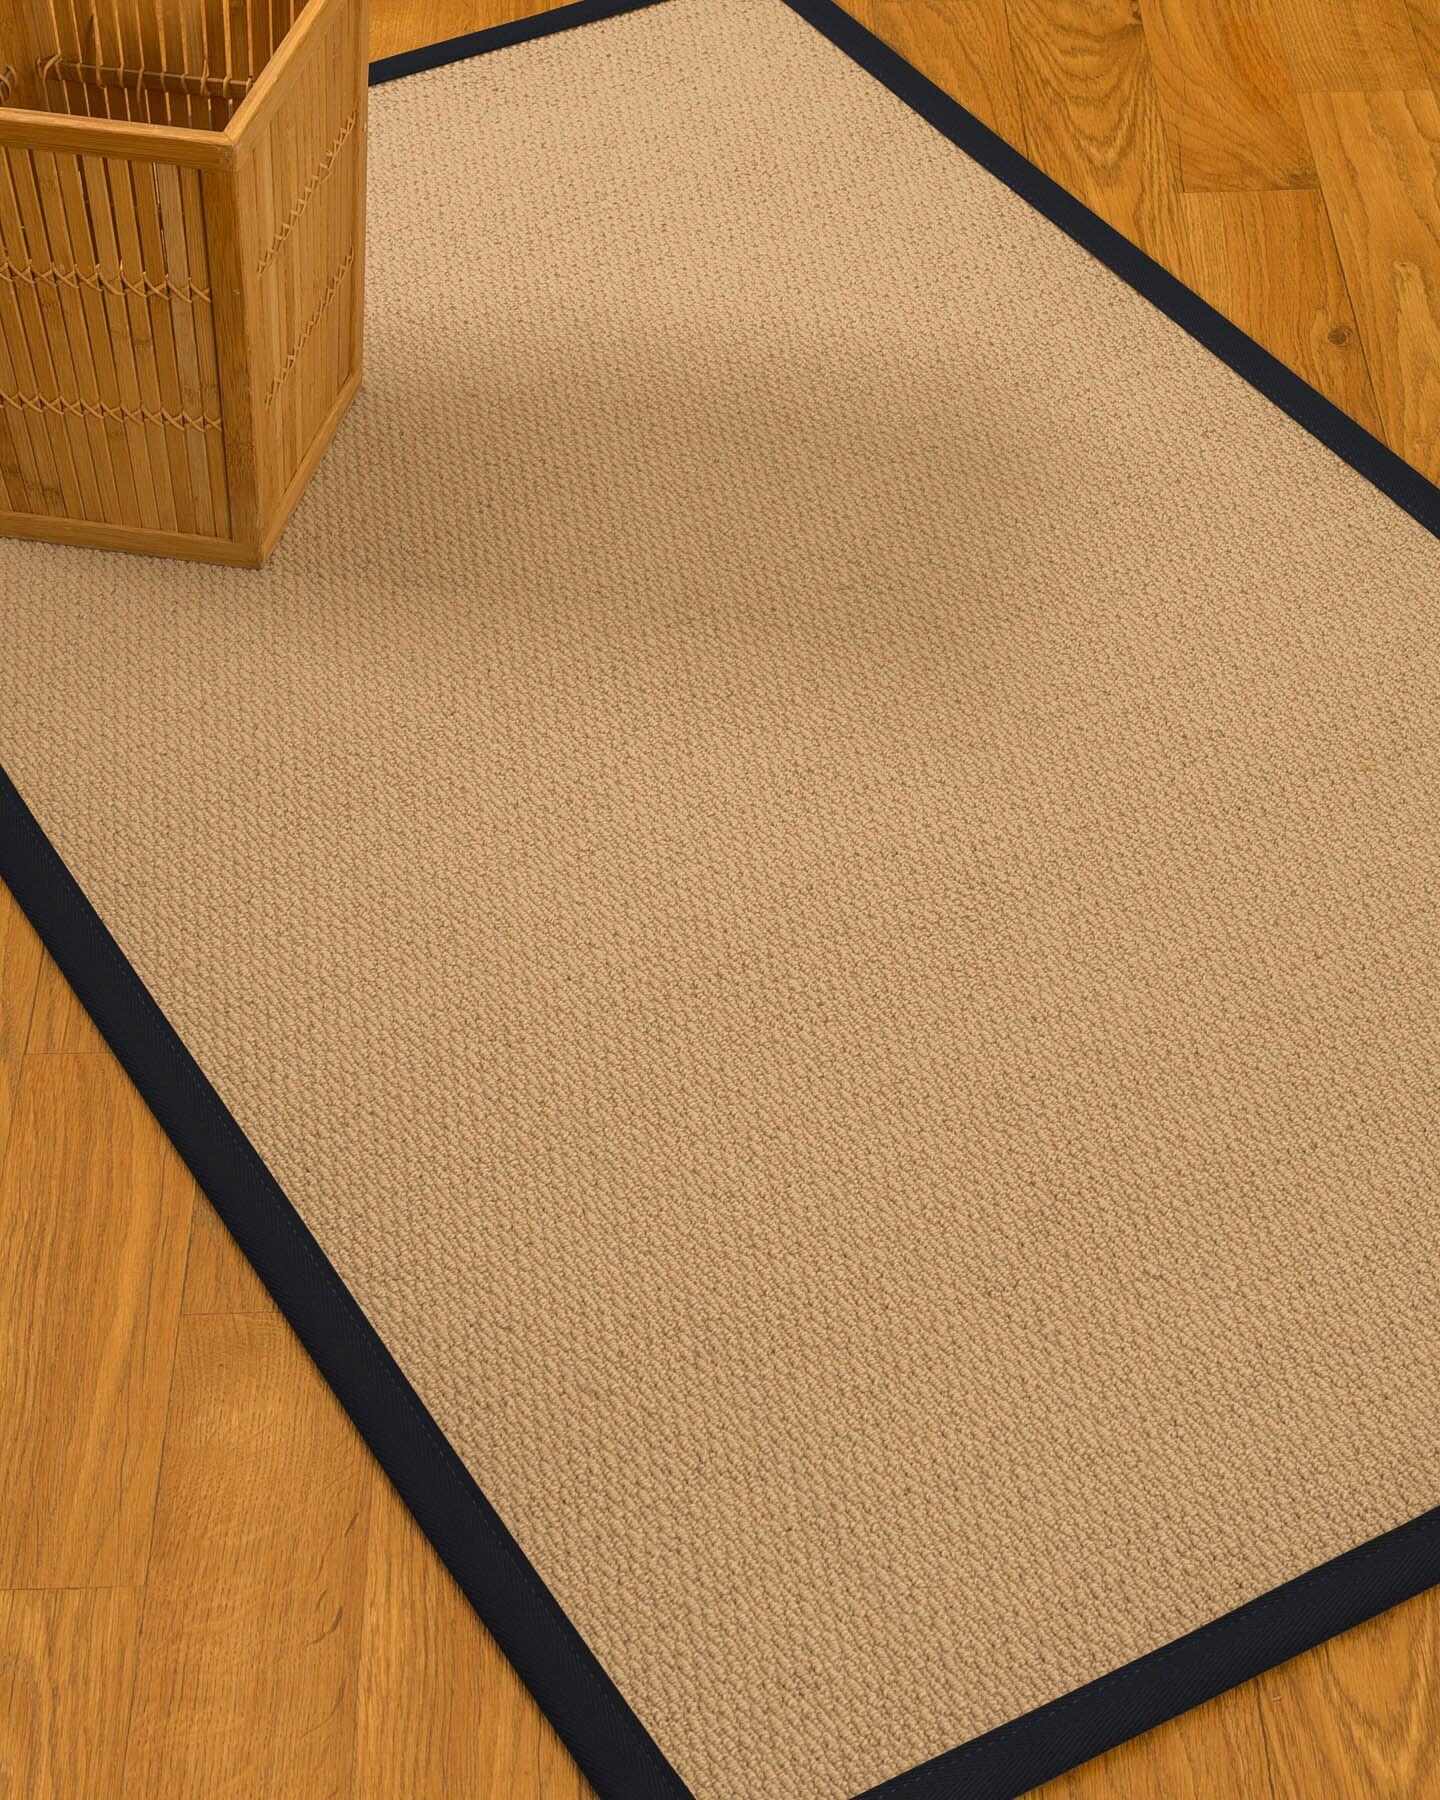 Chea Border Hand-Woven Wool Beige/Midnight Blue Area Rug Rug Size: Rectangle 8' x 10', Rug Pad Included: Yes